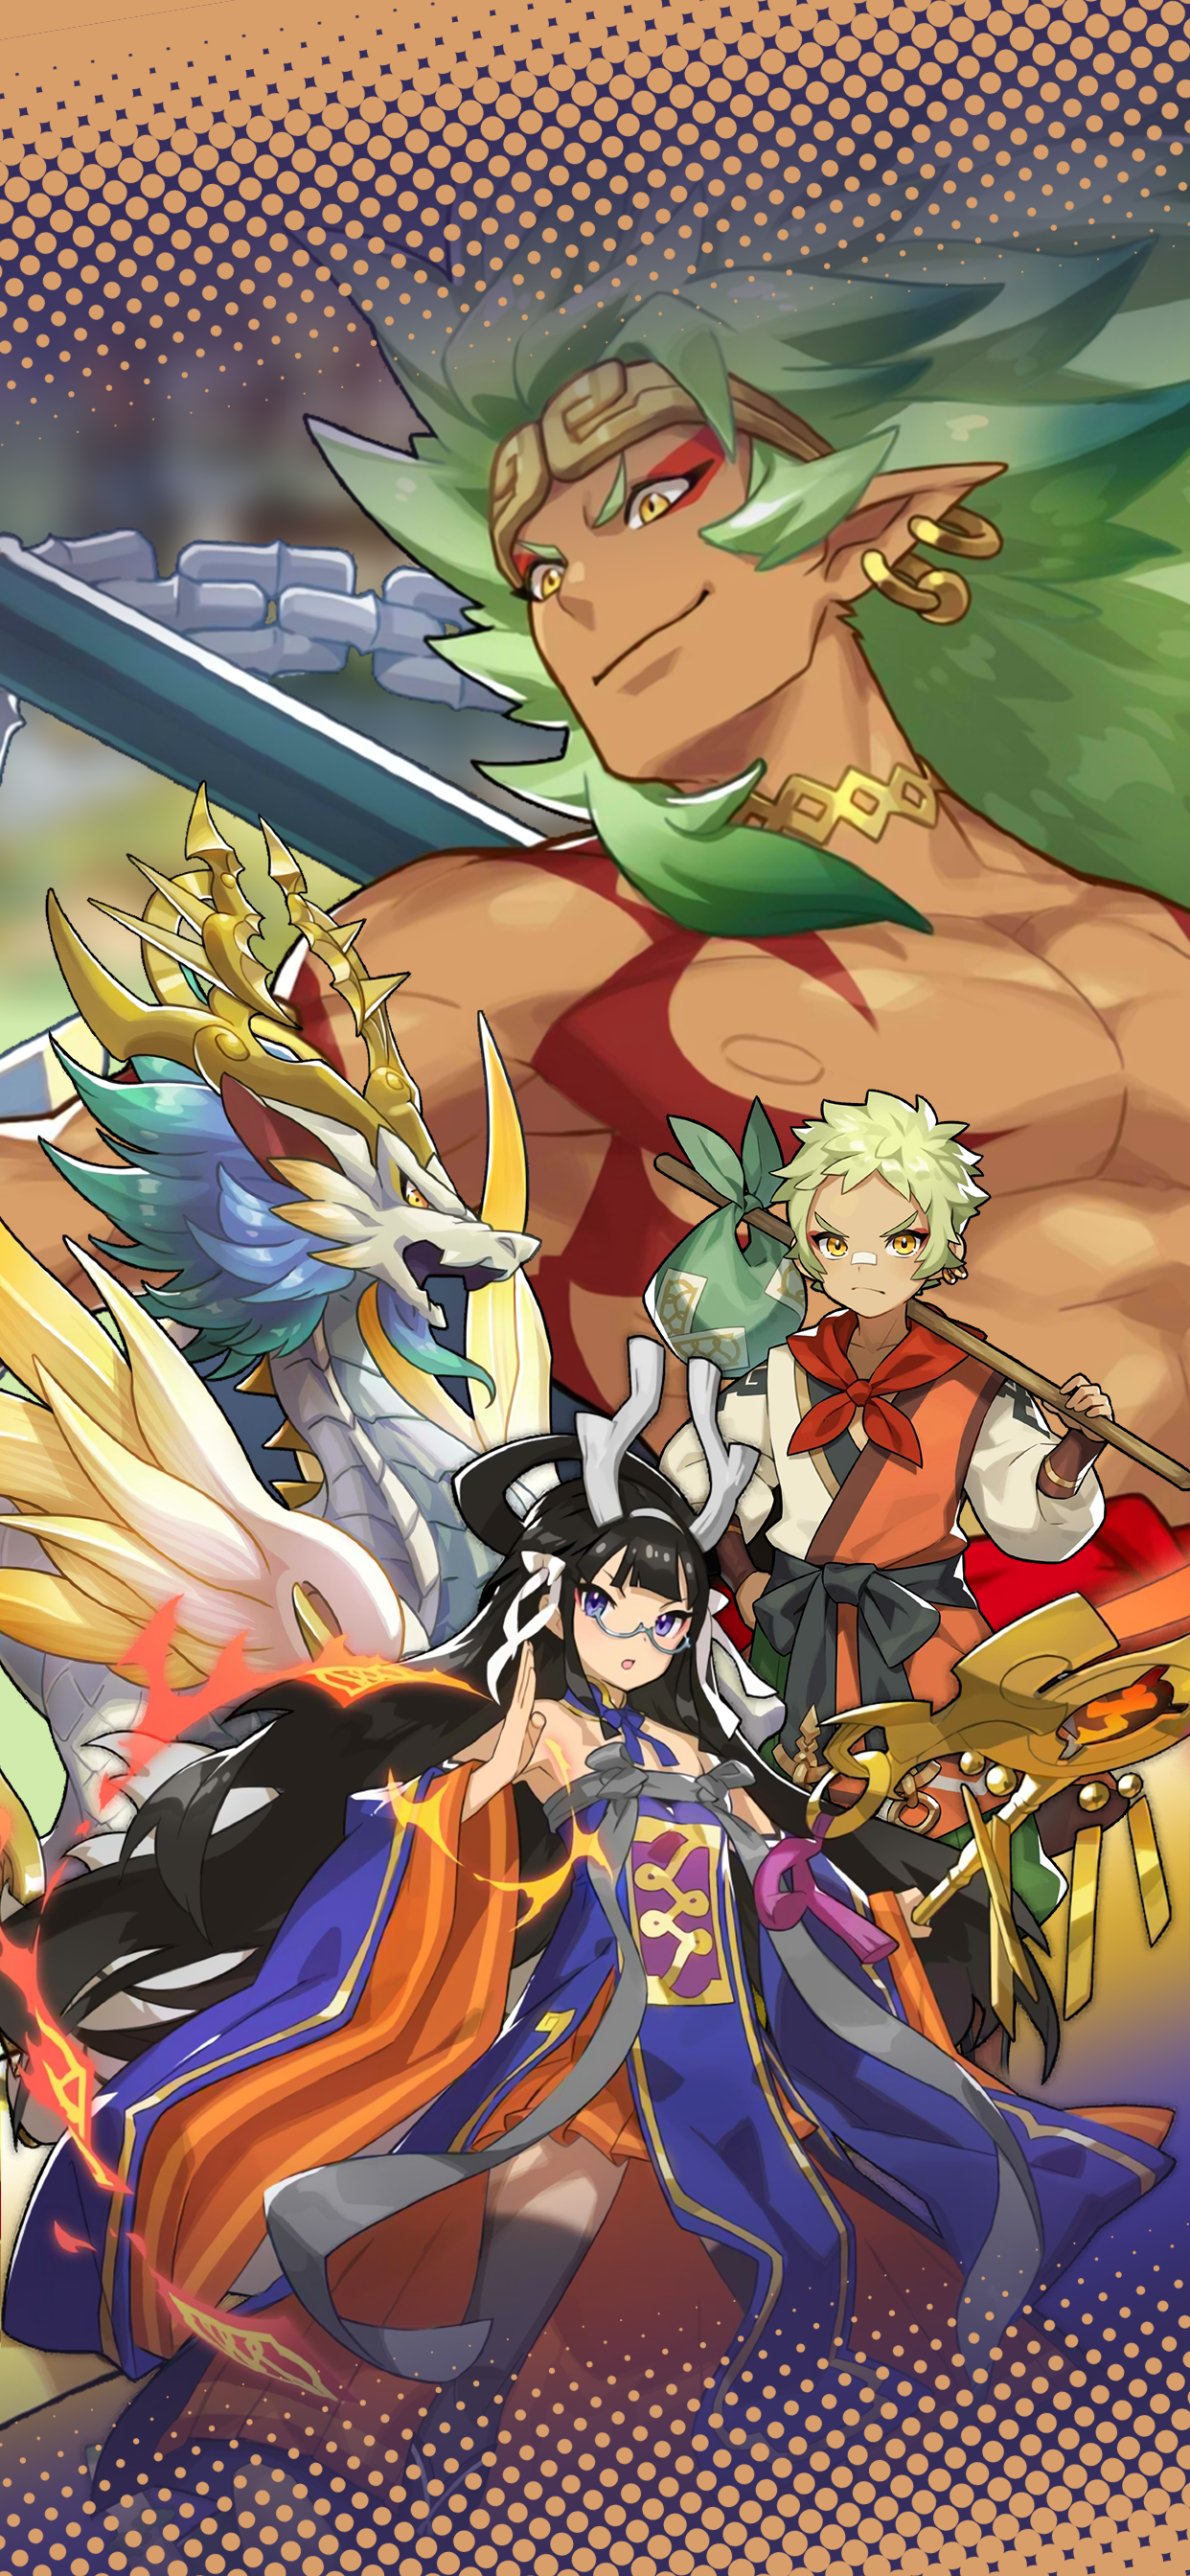 Dragalia Lost Echoes of Antiquity wallpaper in 2020